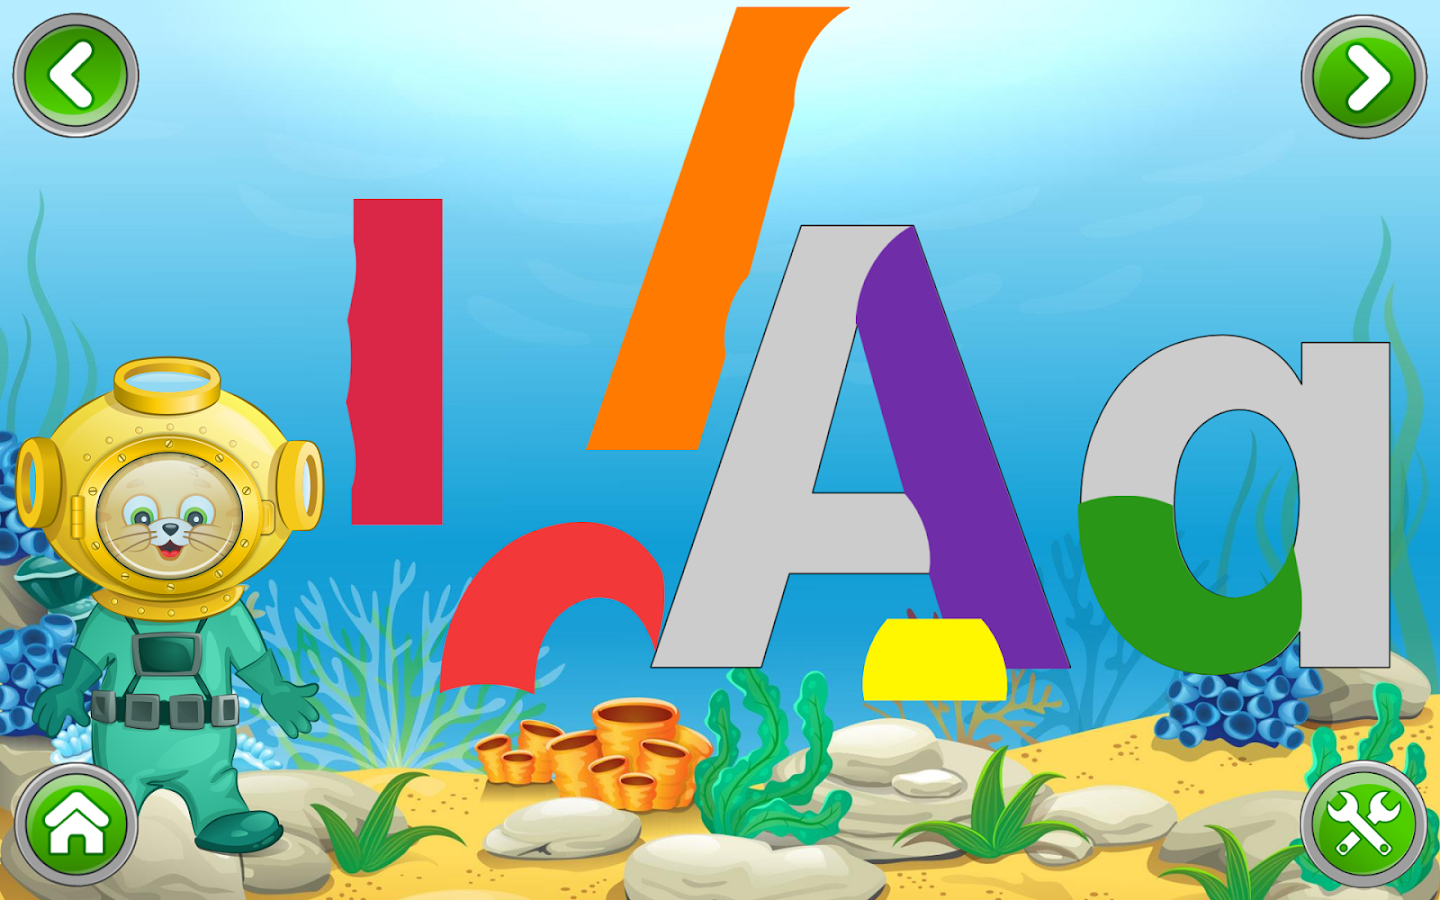 kids abc letters lite android apps on google play With kids abc letters lite